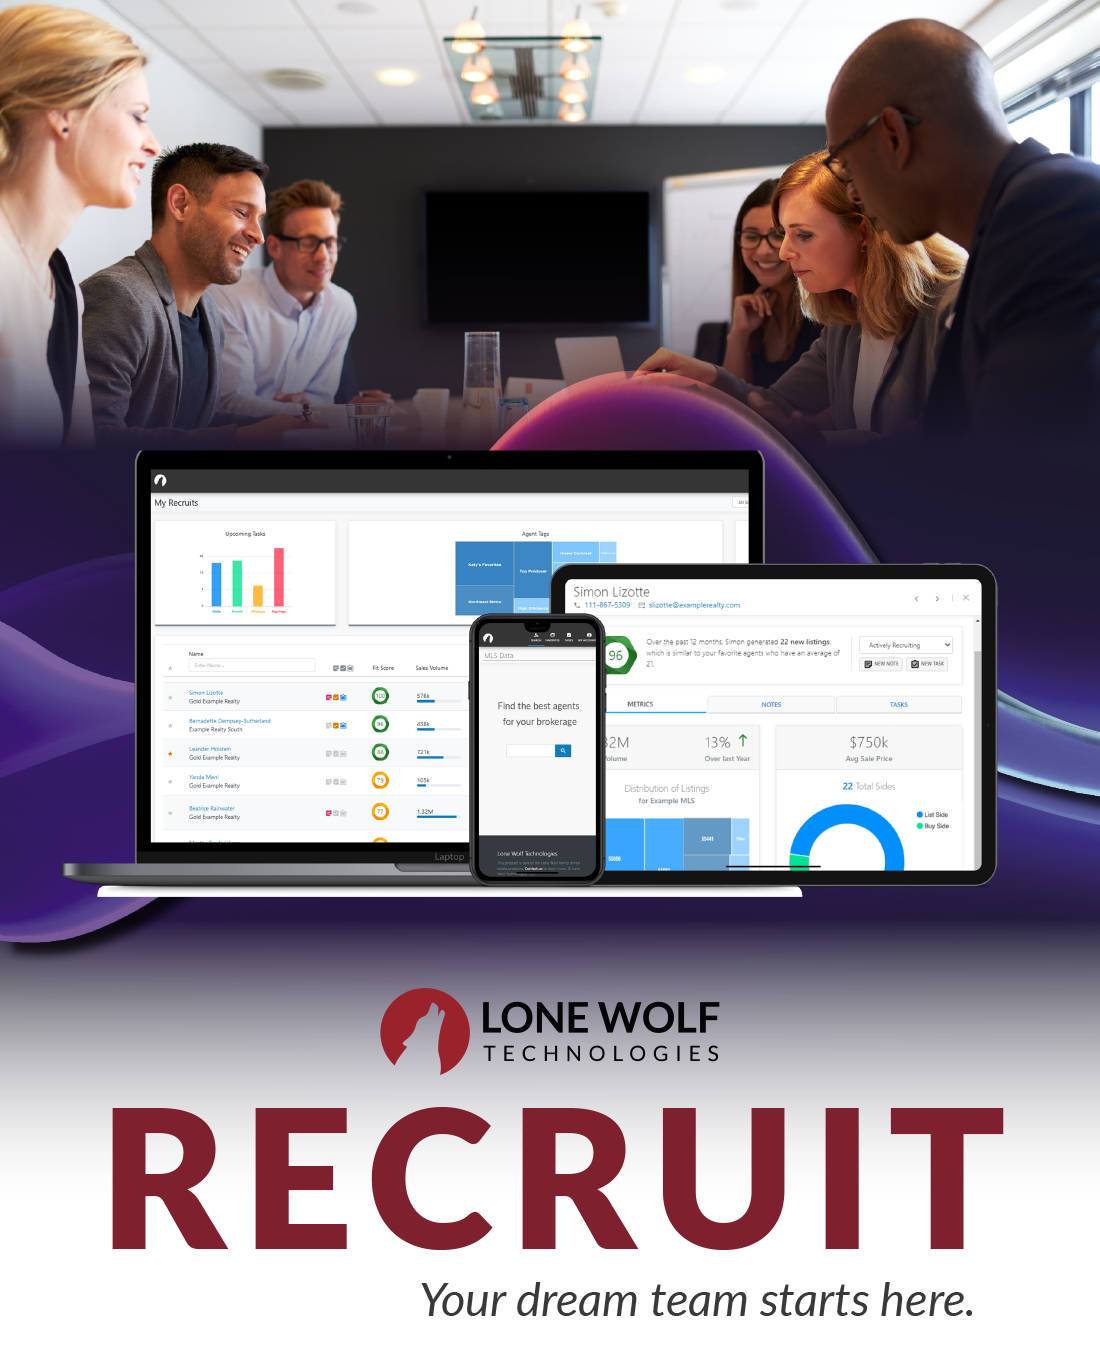 Q&A with Katy Pusch: The Mind Behind Lone Wolf Insights